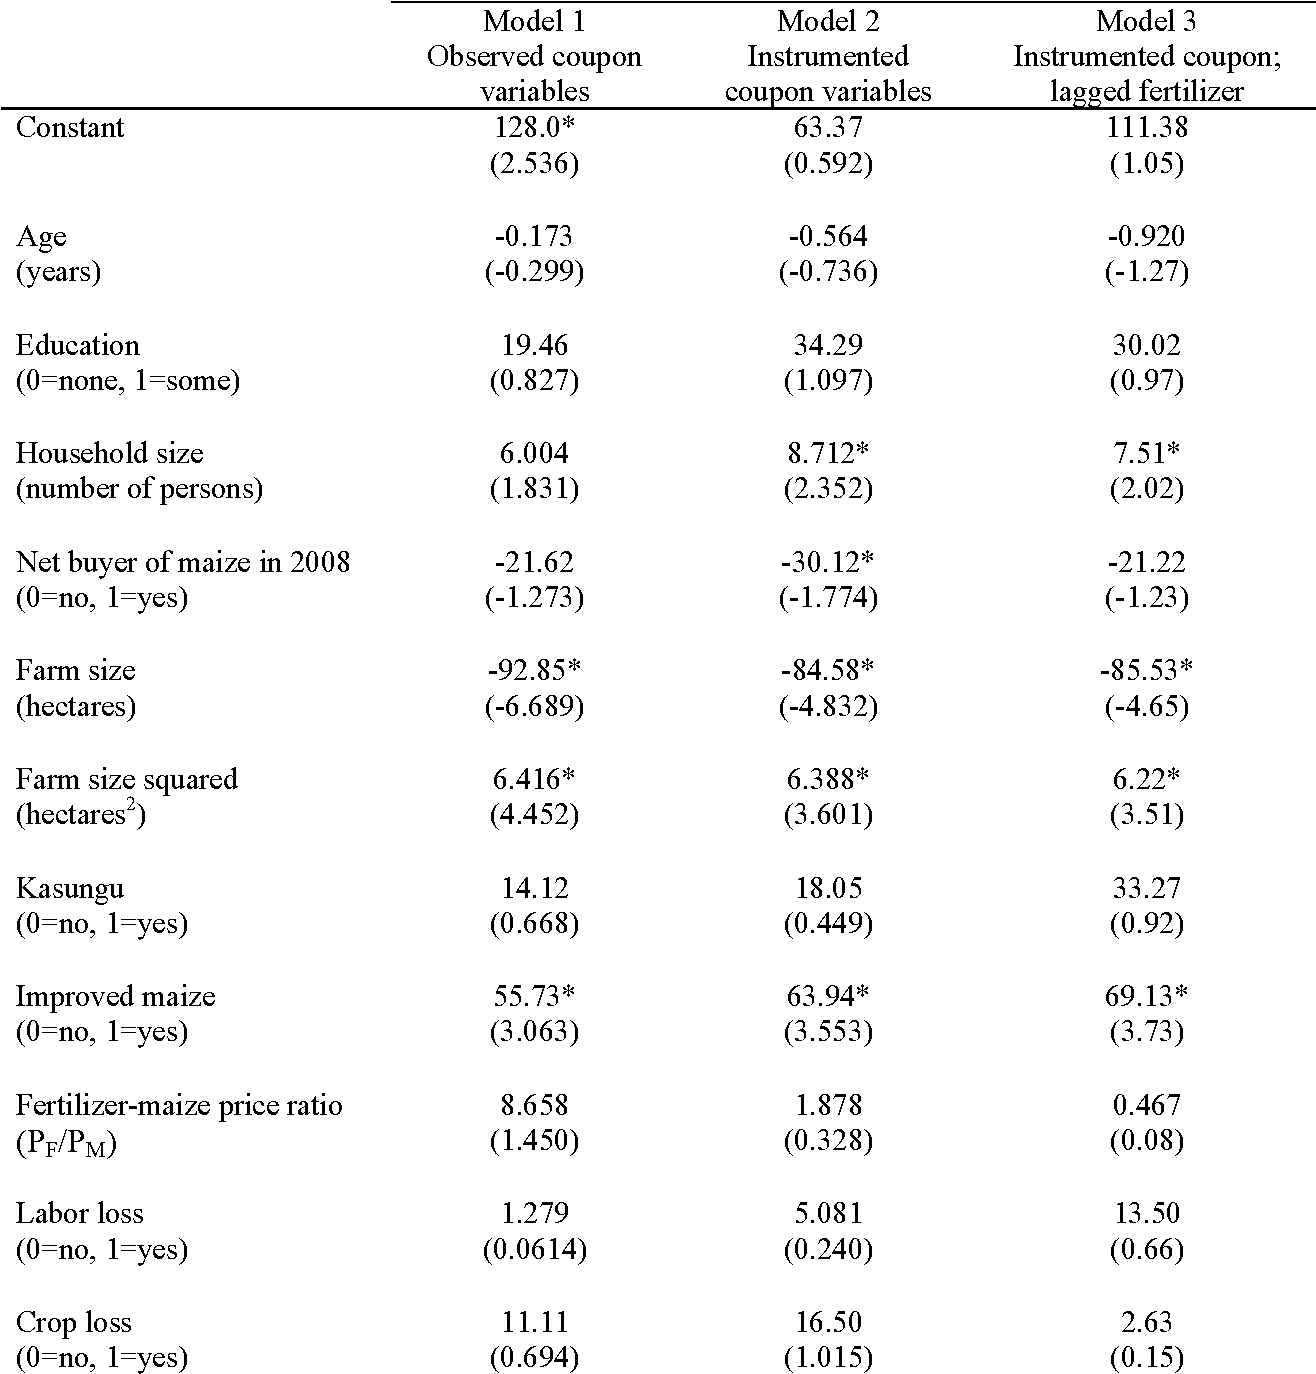 Table 3 Regression results for the effect of coupon receipt on maize fertilizer use